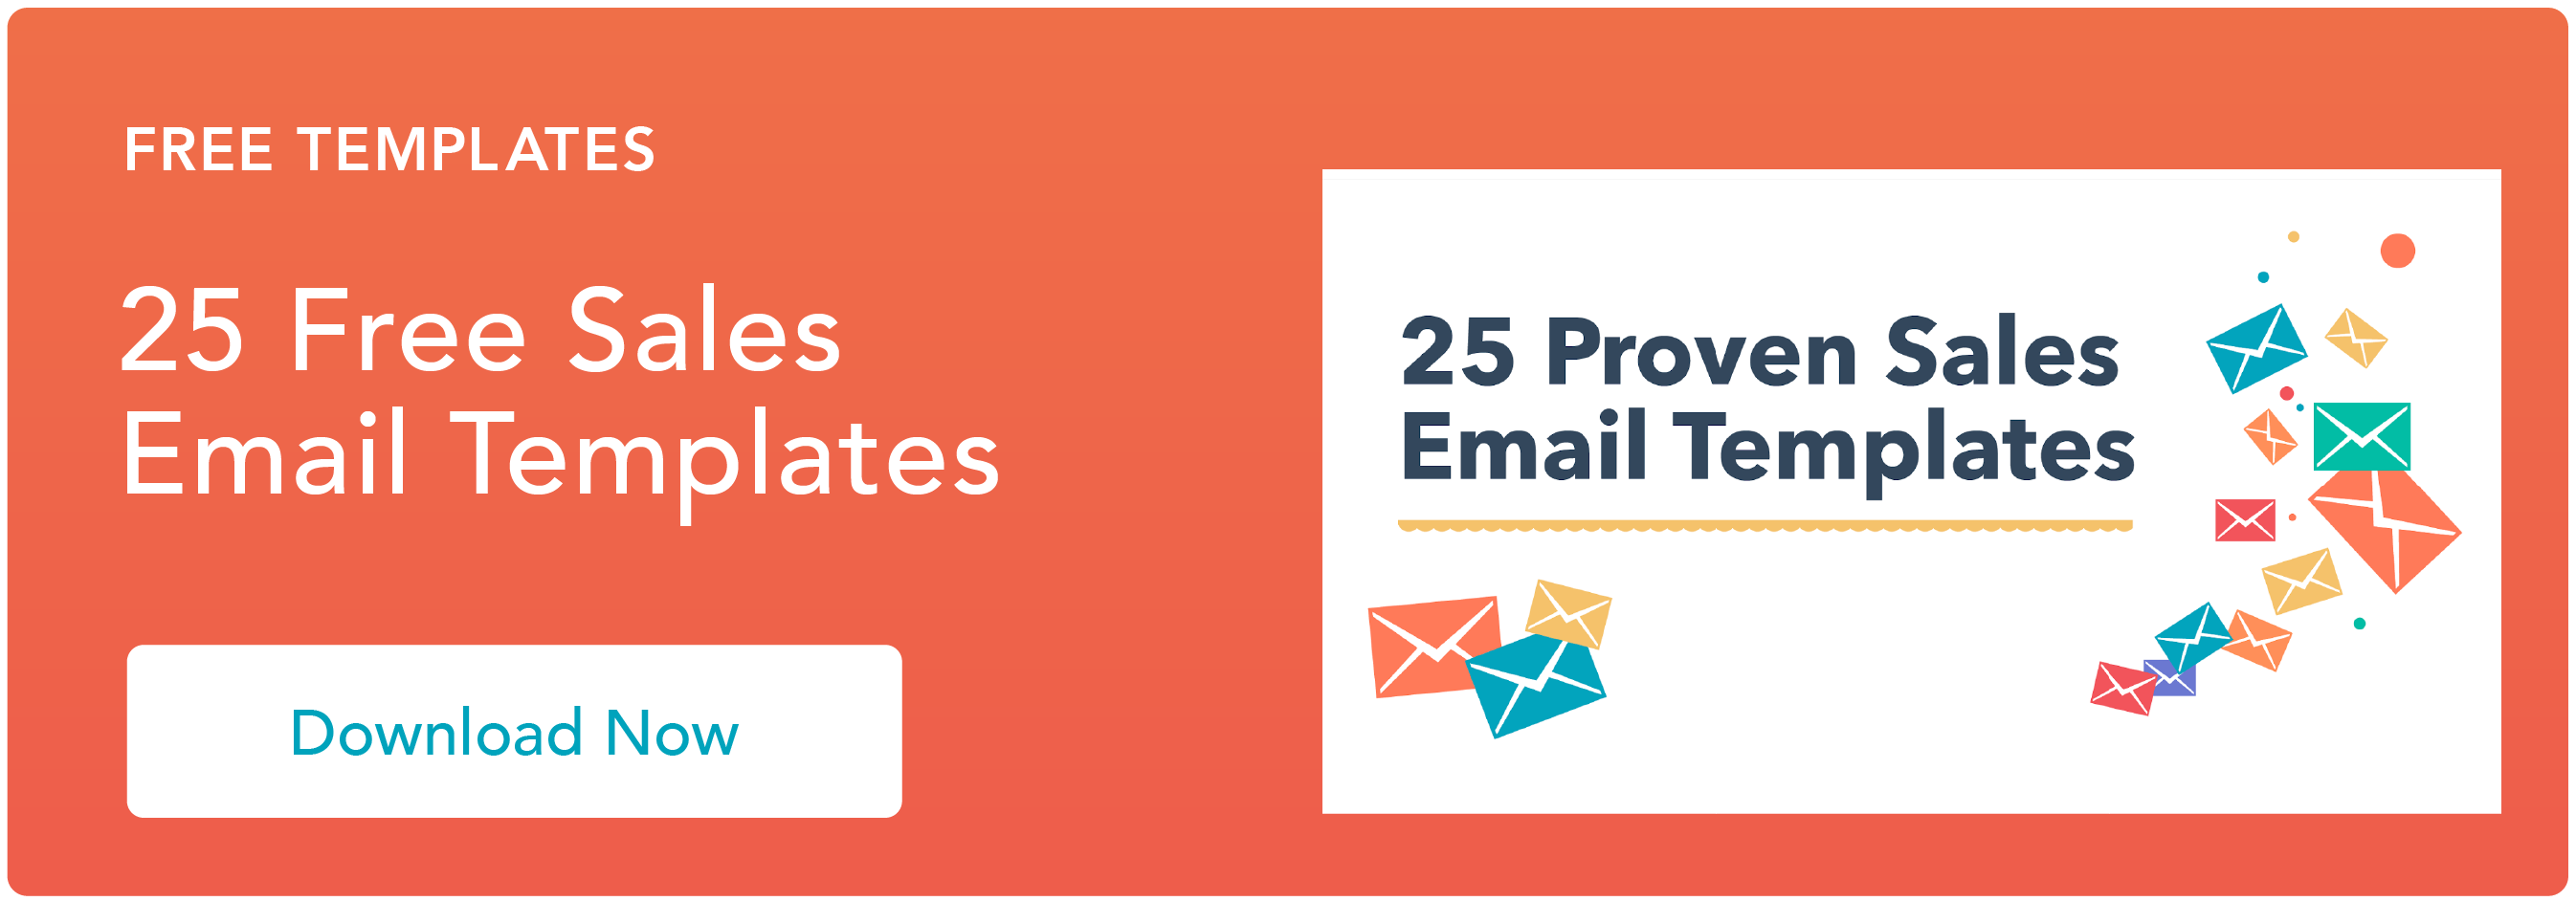 10 Sales Email Templates With 60% or Higher Open Rates